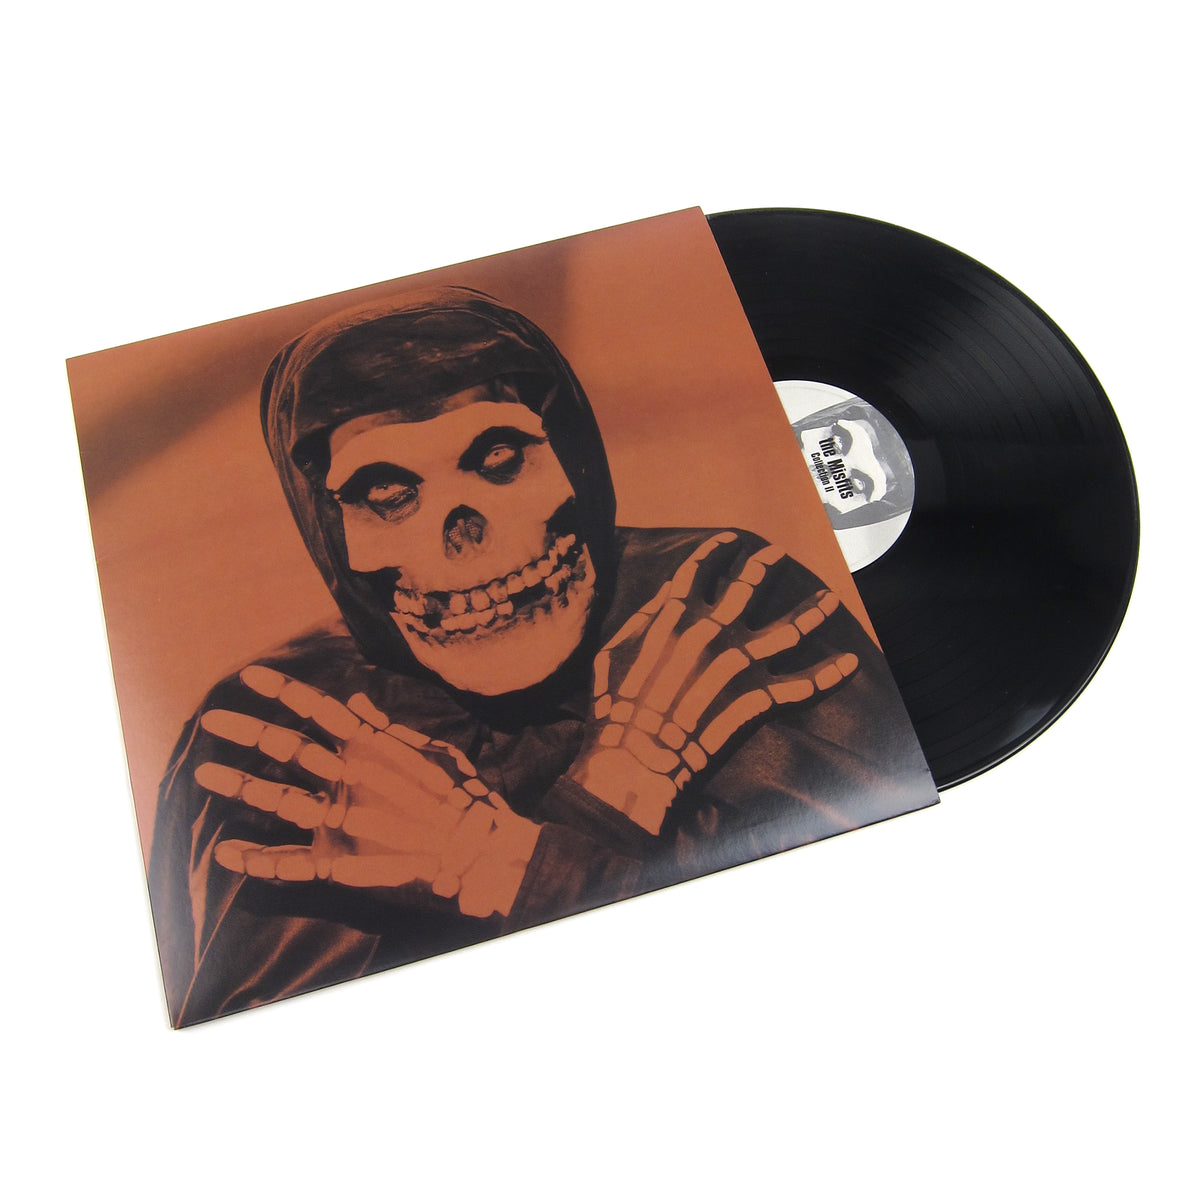 Misfits: Collection II Vinyl LP